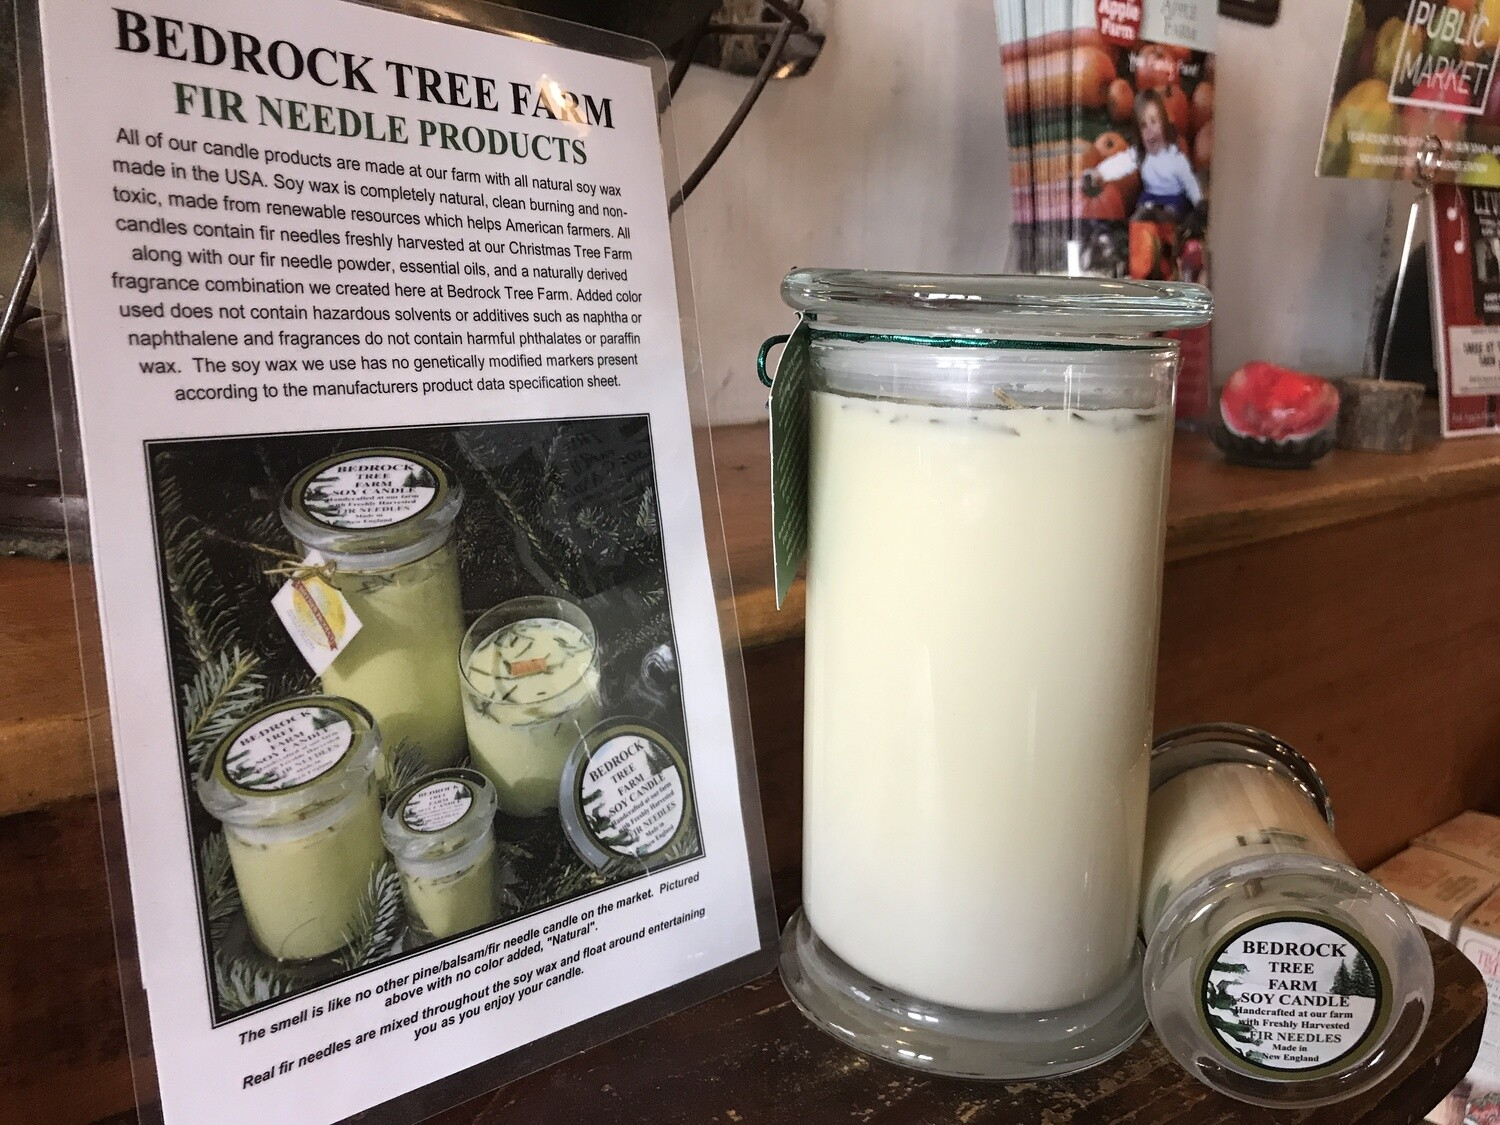 Bedrock Tree Farm Soy Candle 21oz